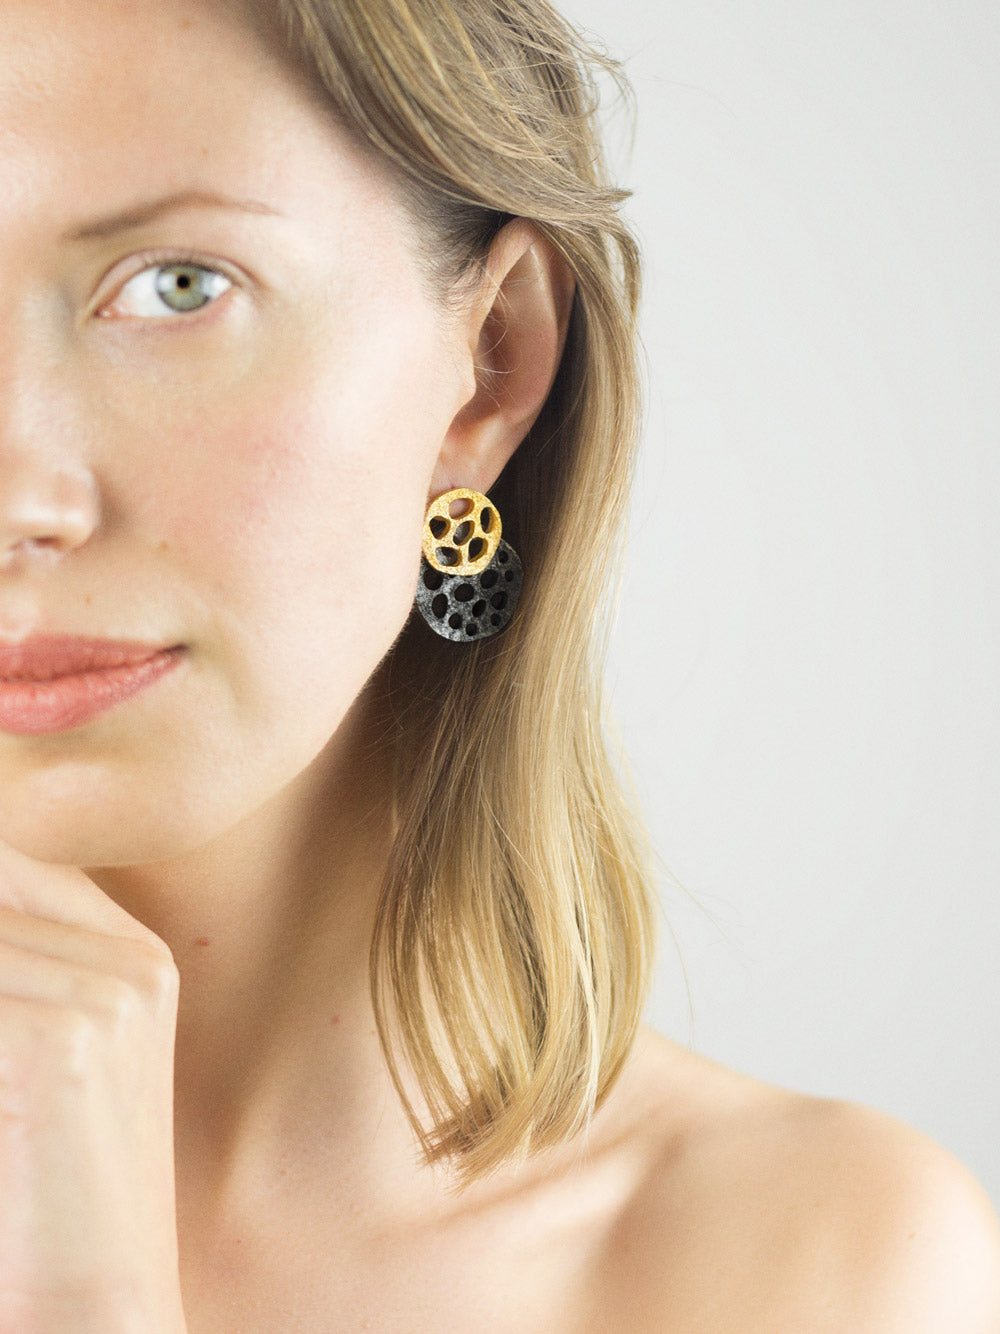 Barcelona Milà Earrings – Paula Vieira Jewellery